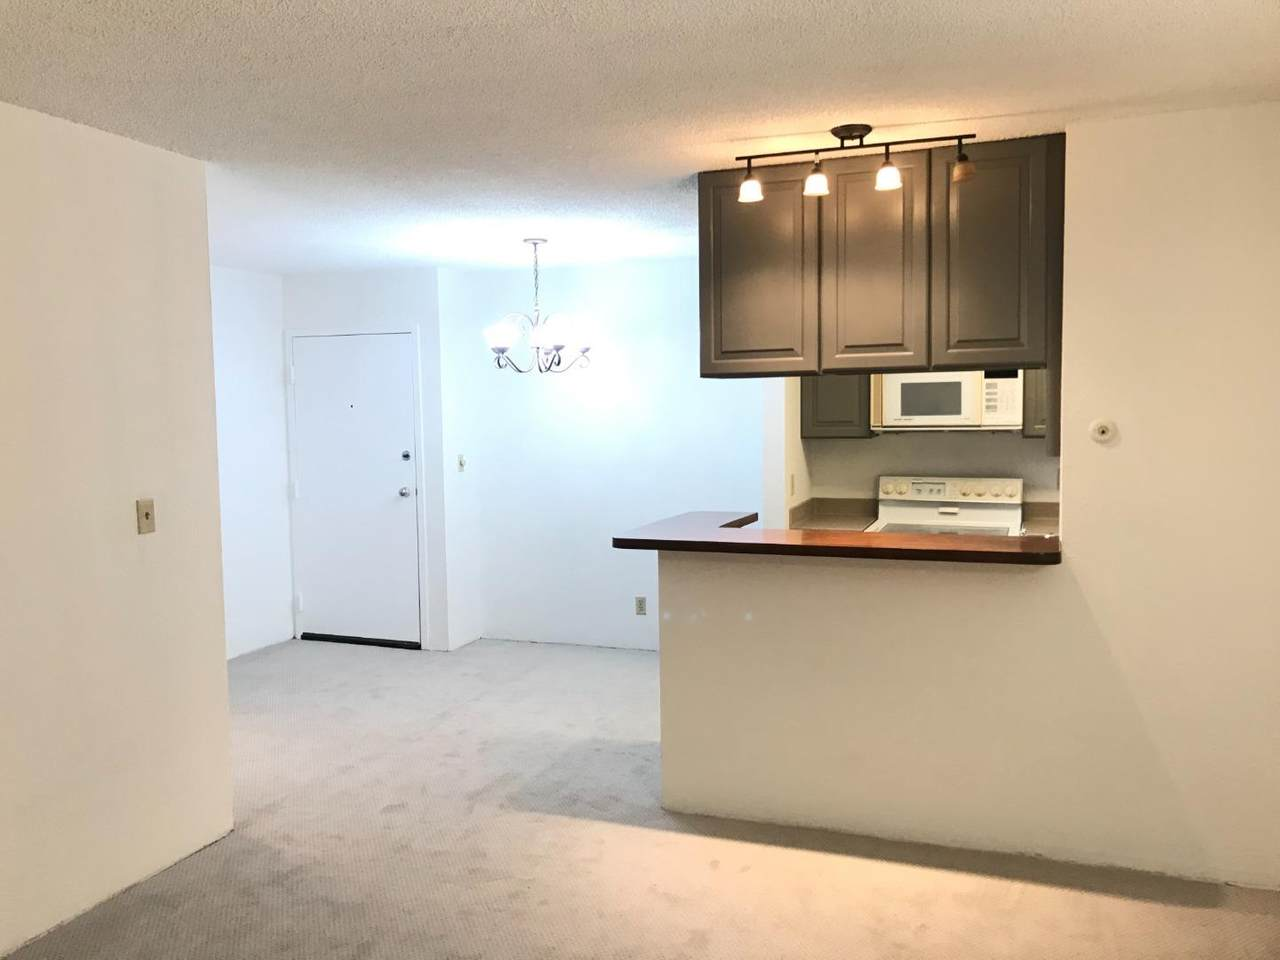 376 Imperial Way 305 - Photo 1